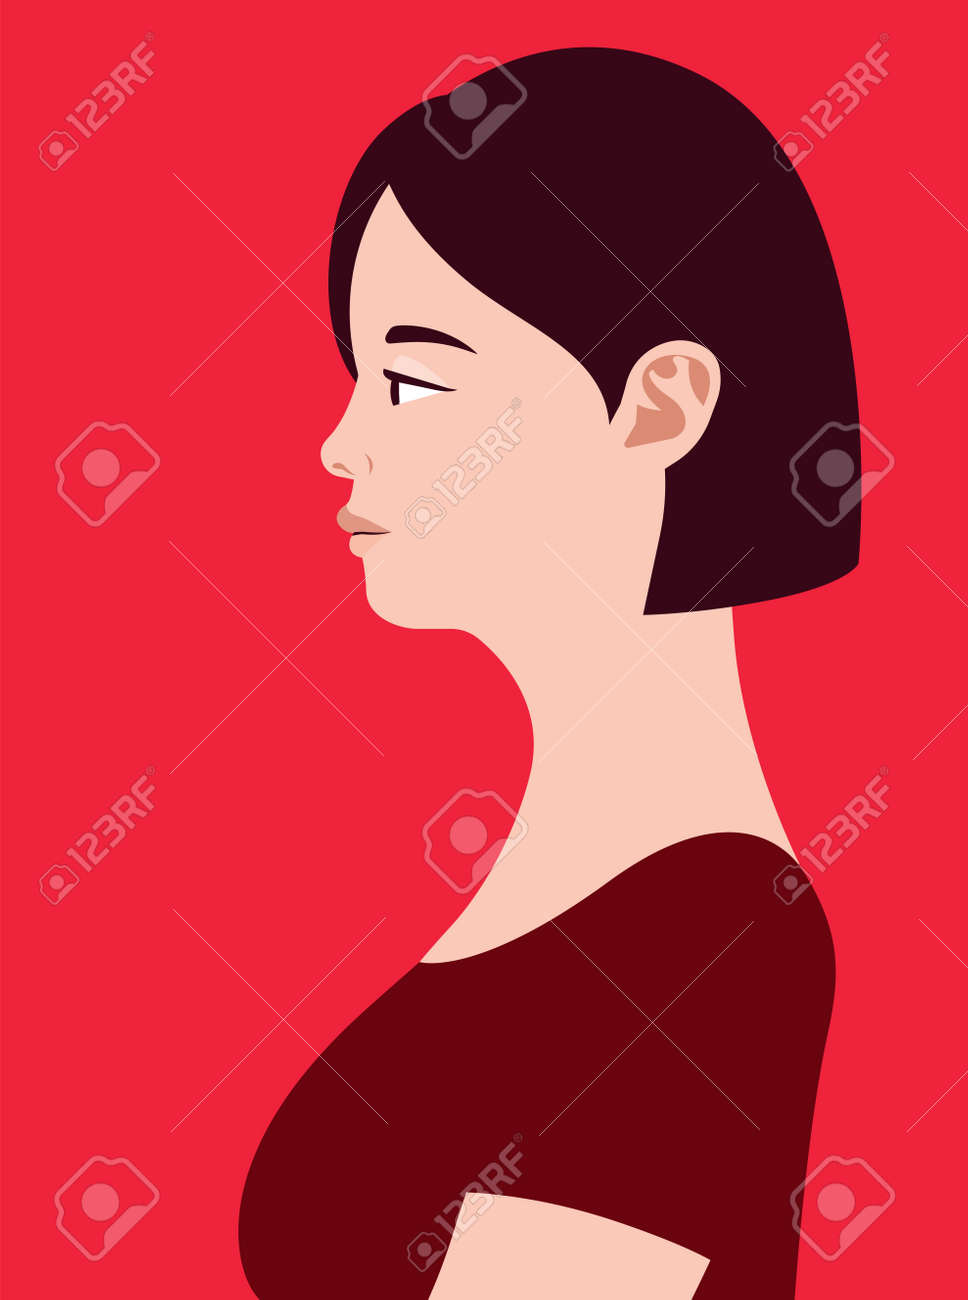 Beautiful fat asian woman of side view. Human simplicity of the globalized world. - 168070212